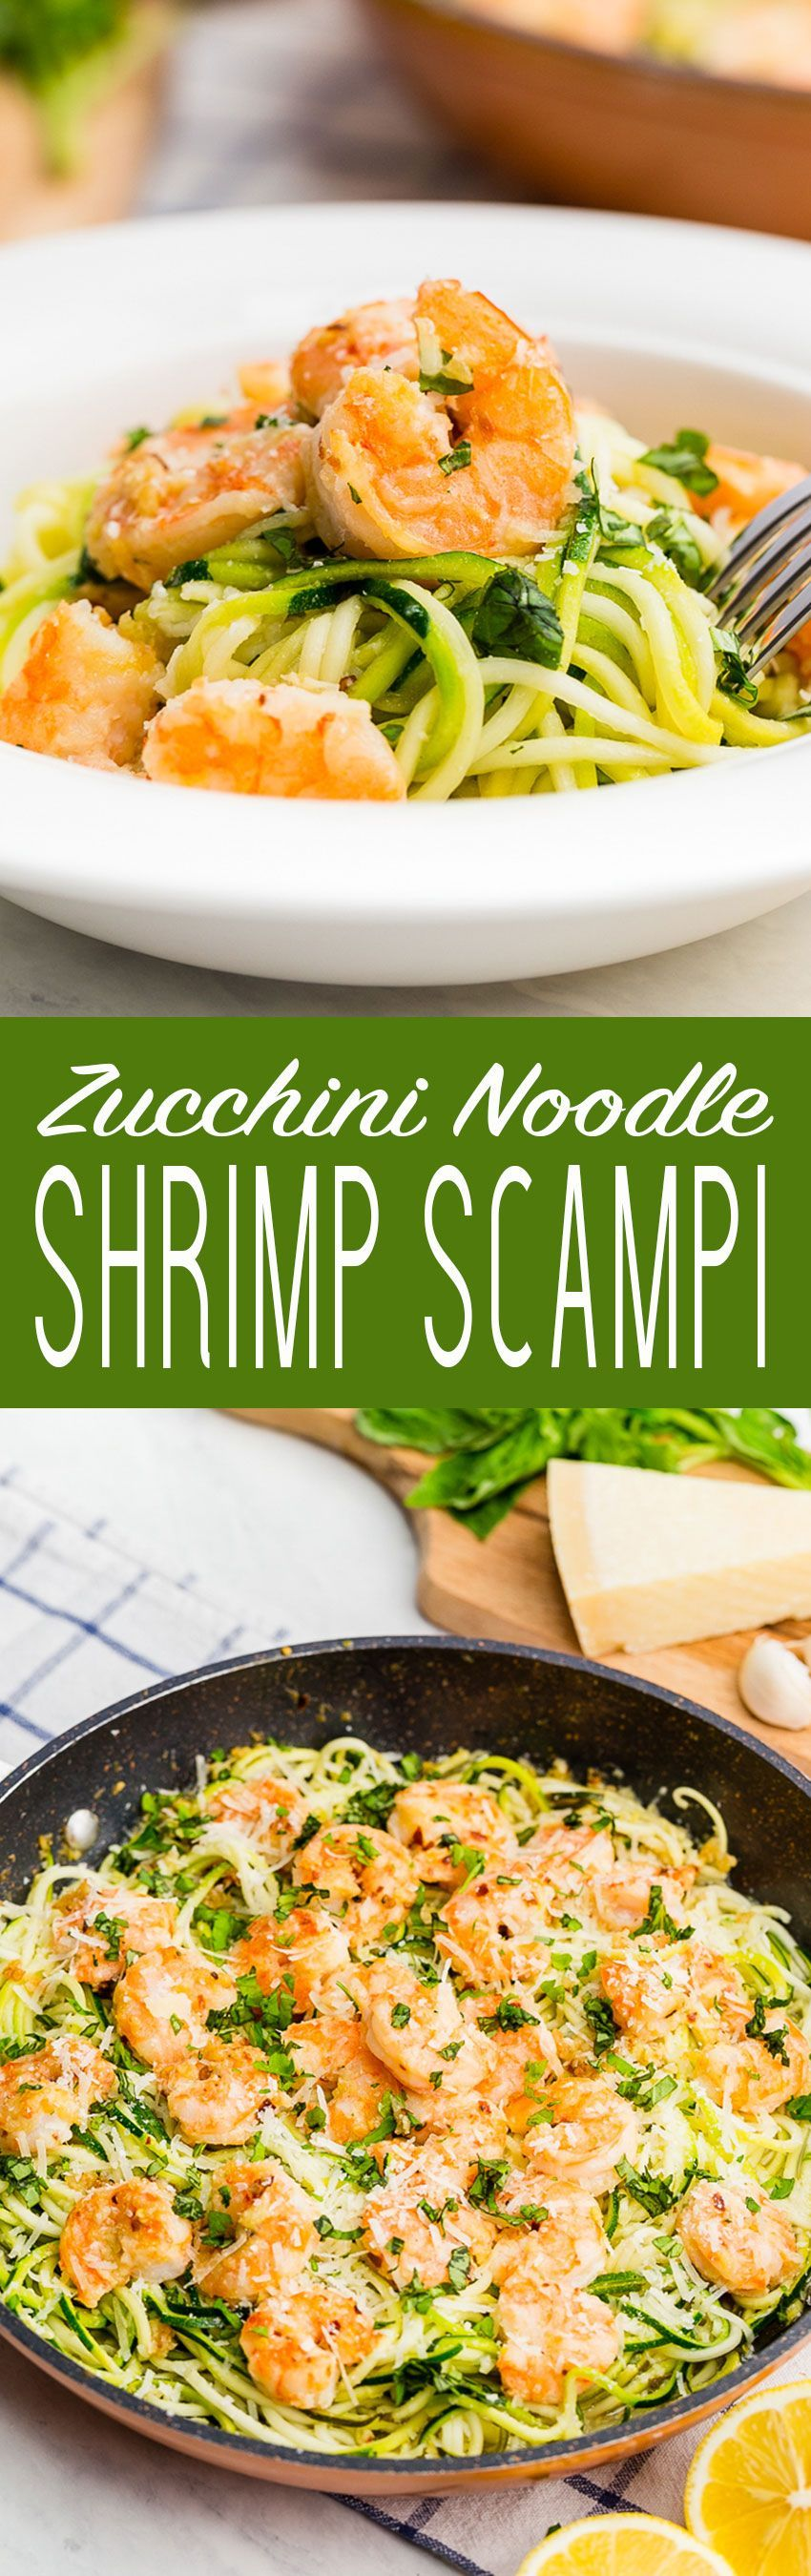 Zucchini Noodle Shrimp Scampi is fresh, delicious, and so easy to throw together!